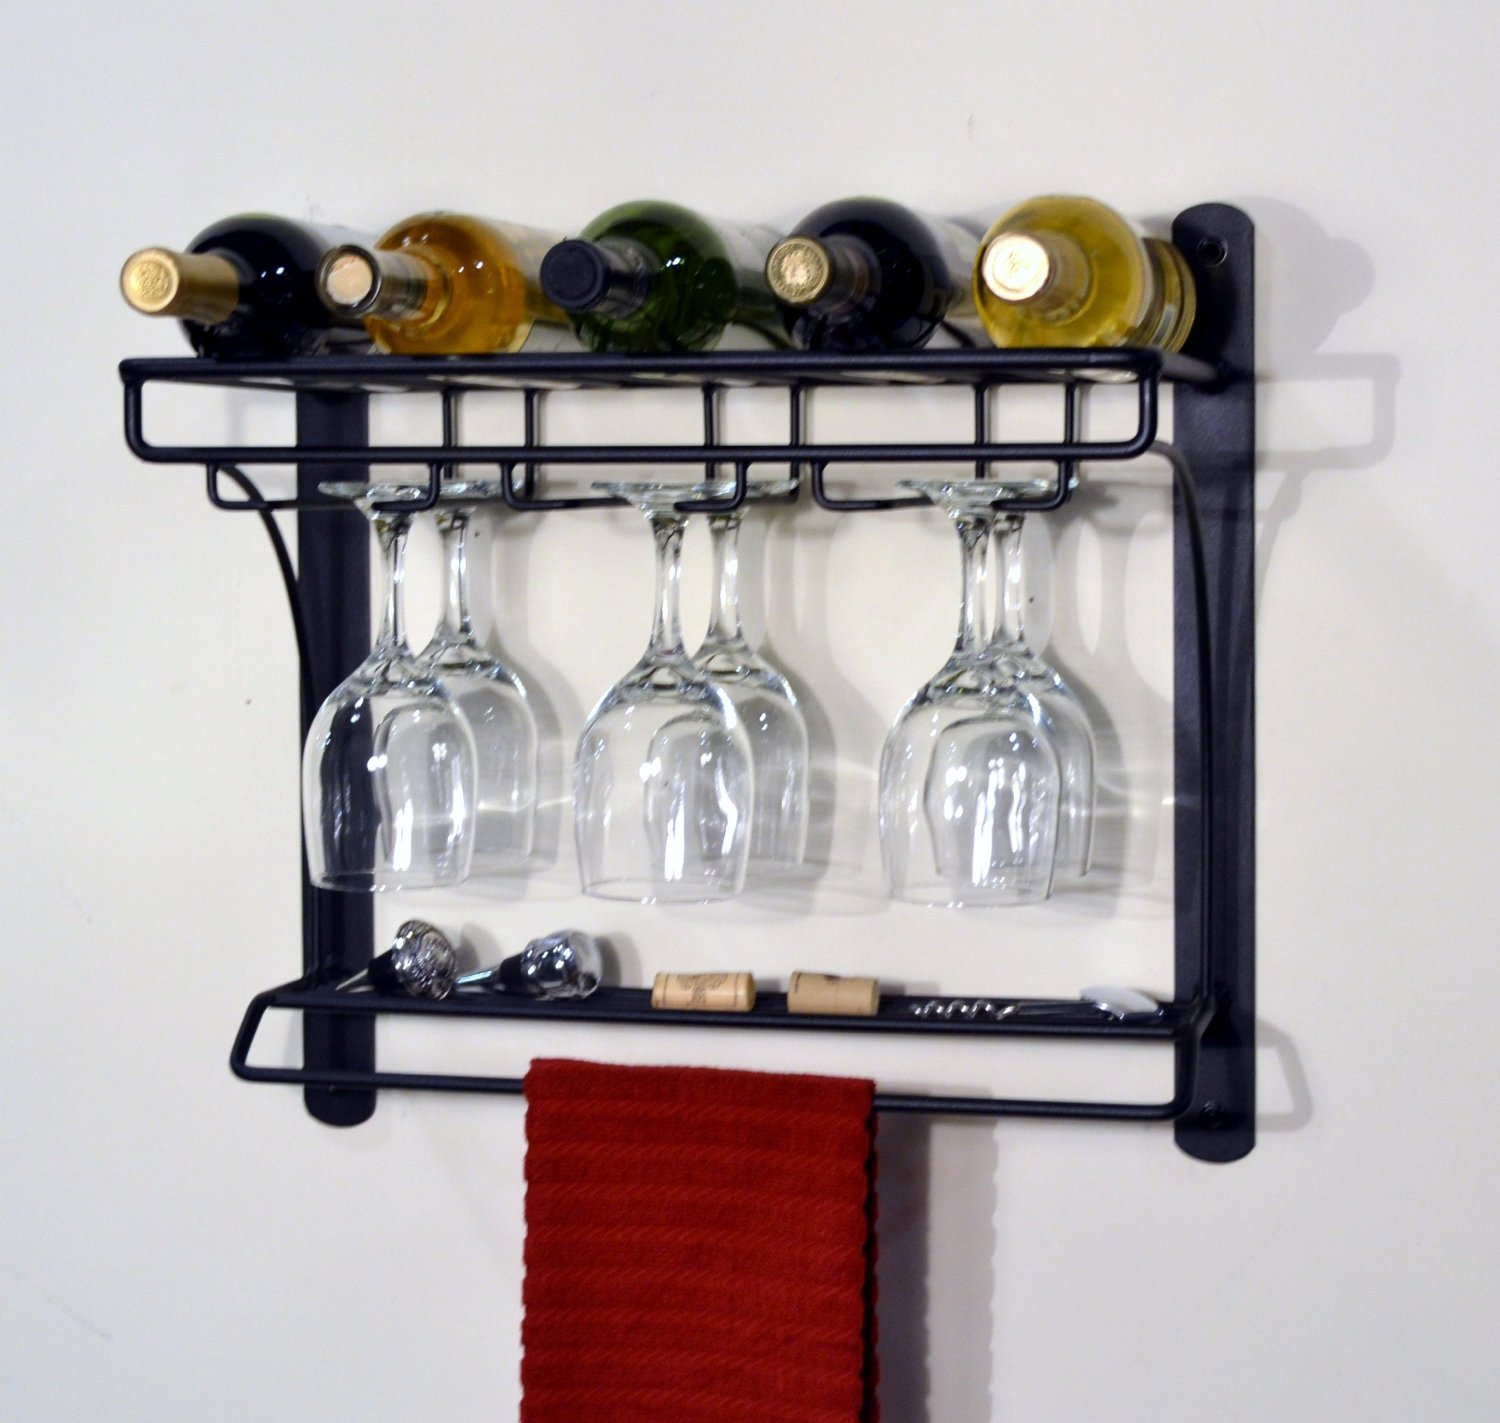 cool wall mounted wine glass holder  homesfeed - simple steel wall wine glass holder